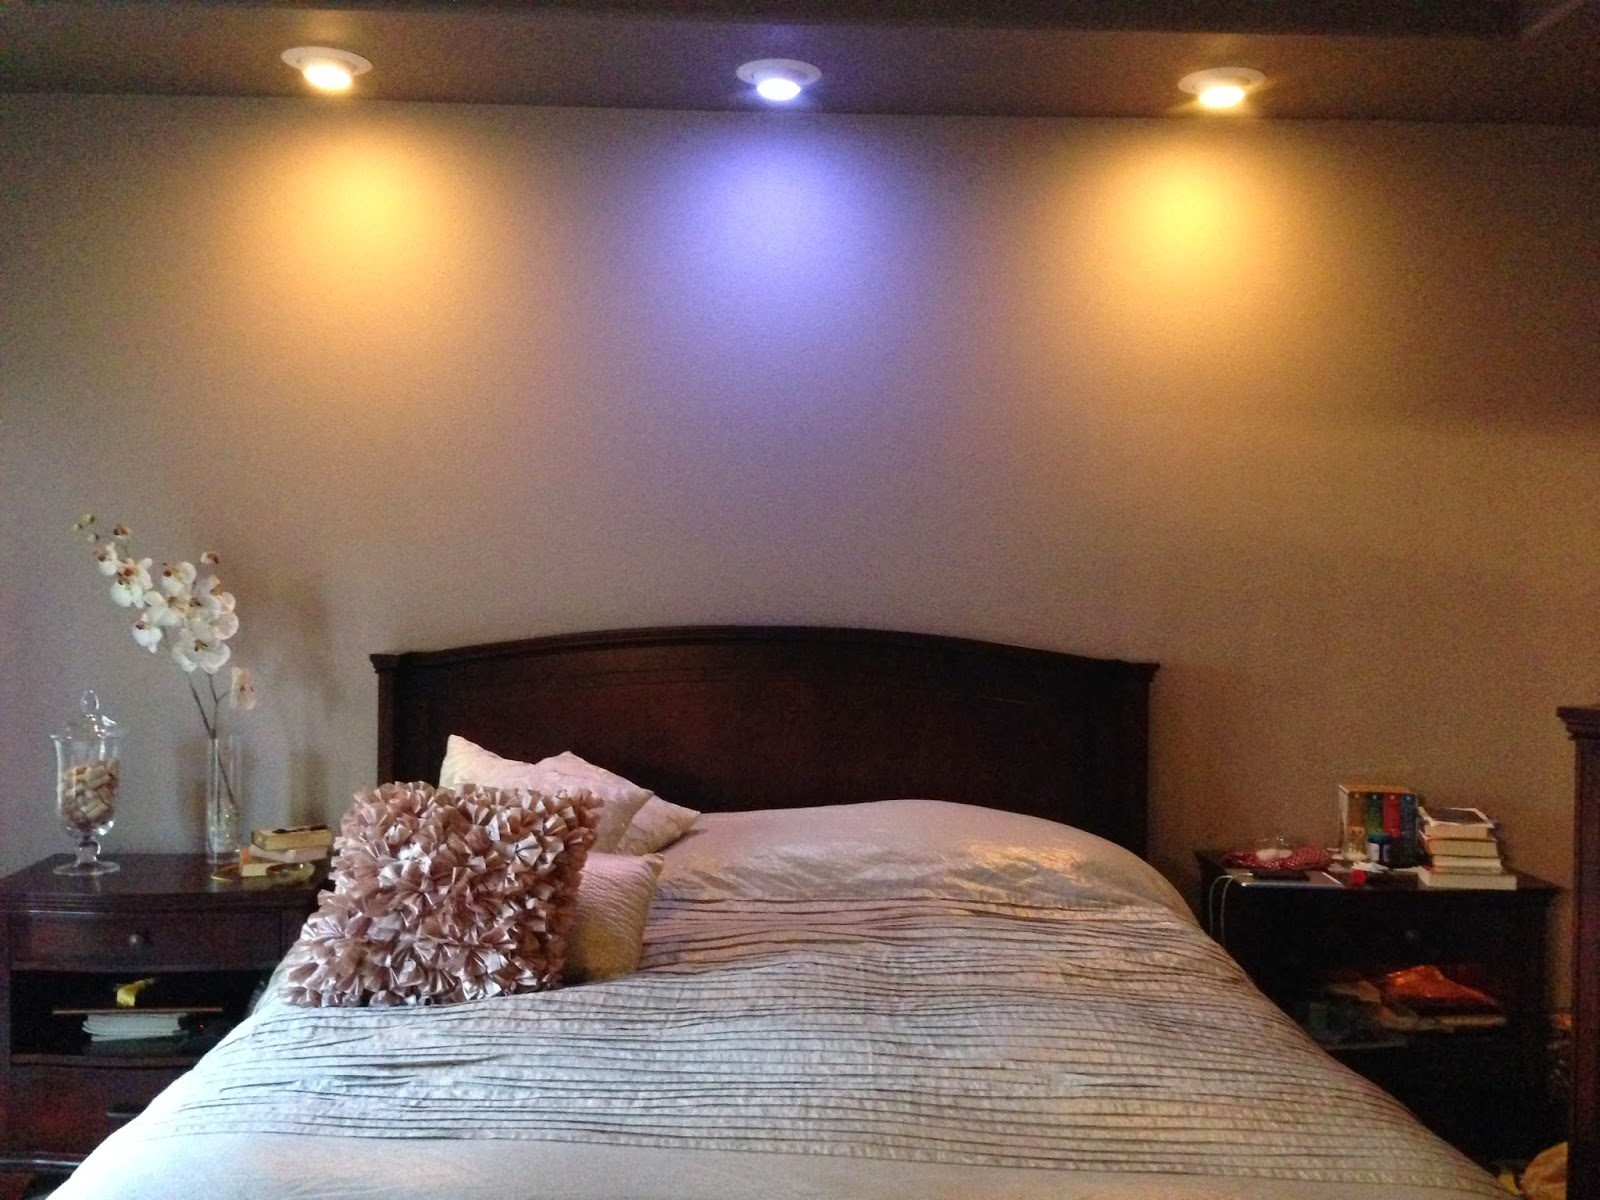 Lighting Wireless Inside Let There Be Lights Loving The Hue Personal Wireless Lighting System